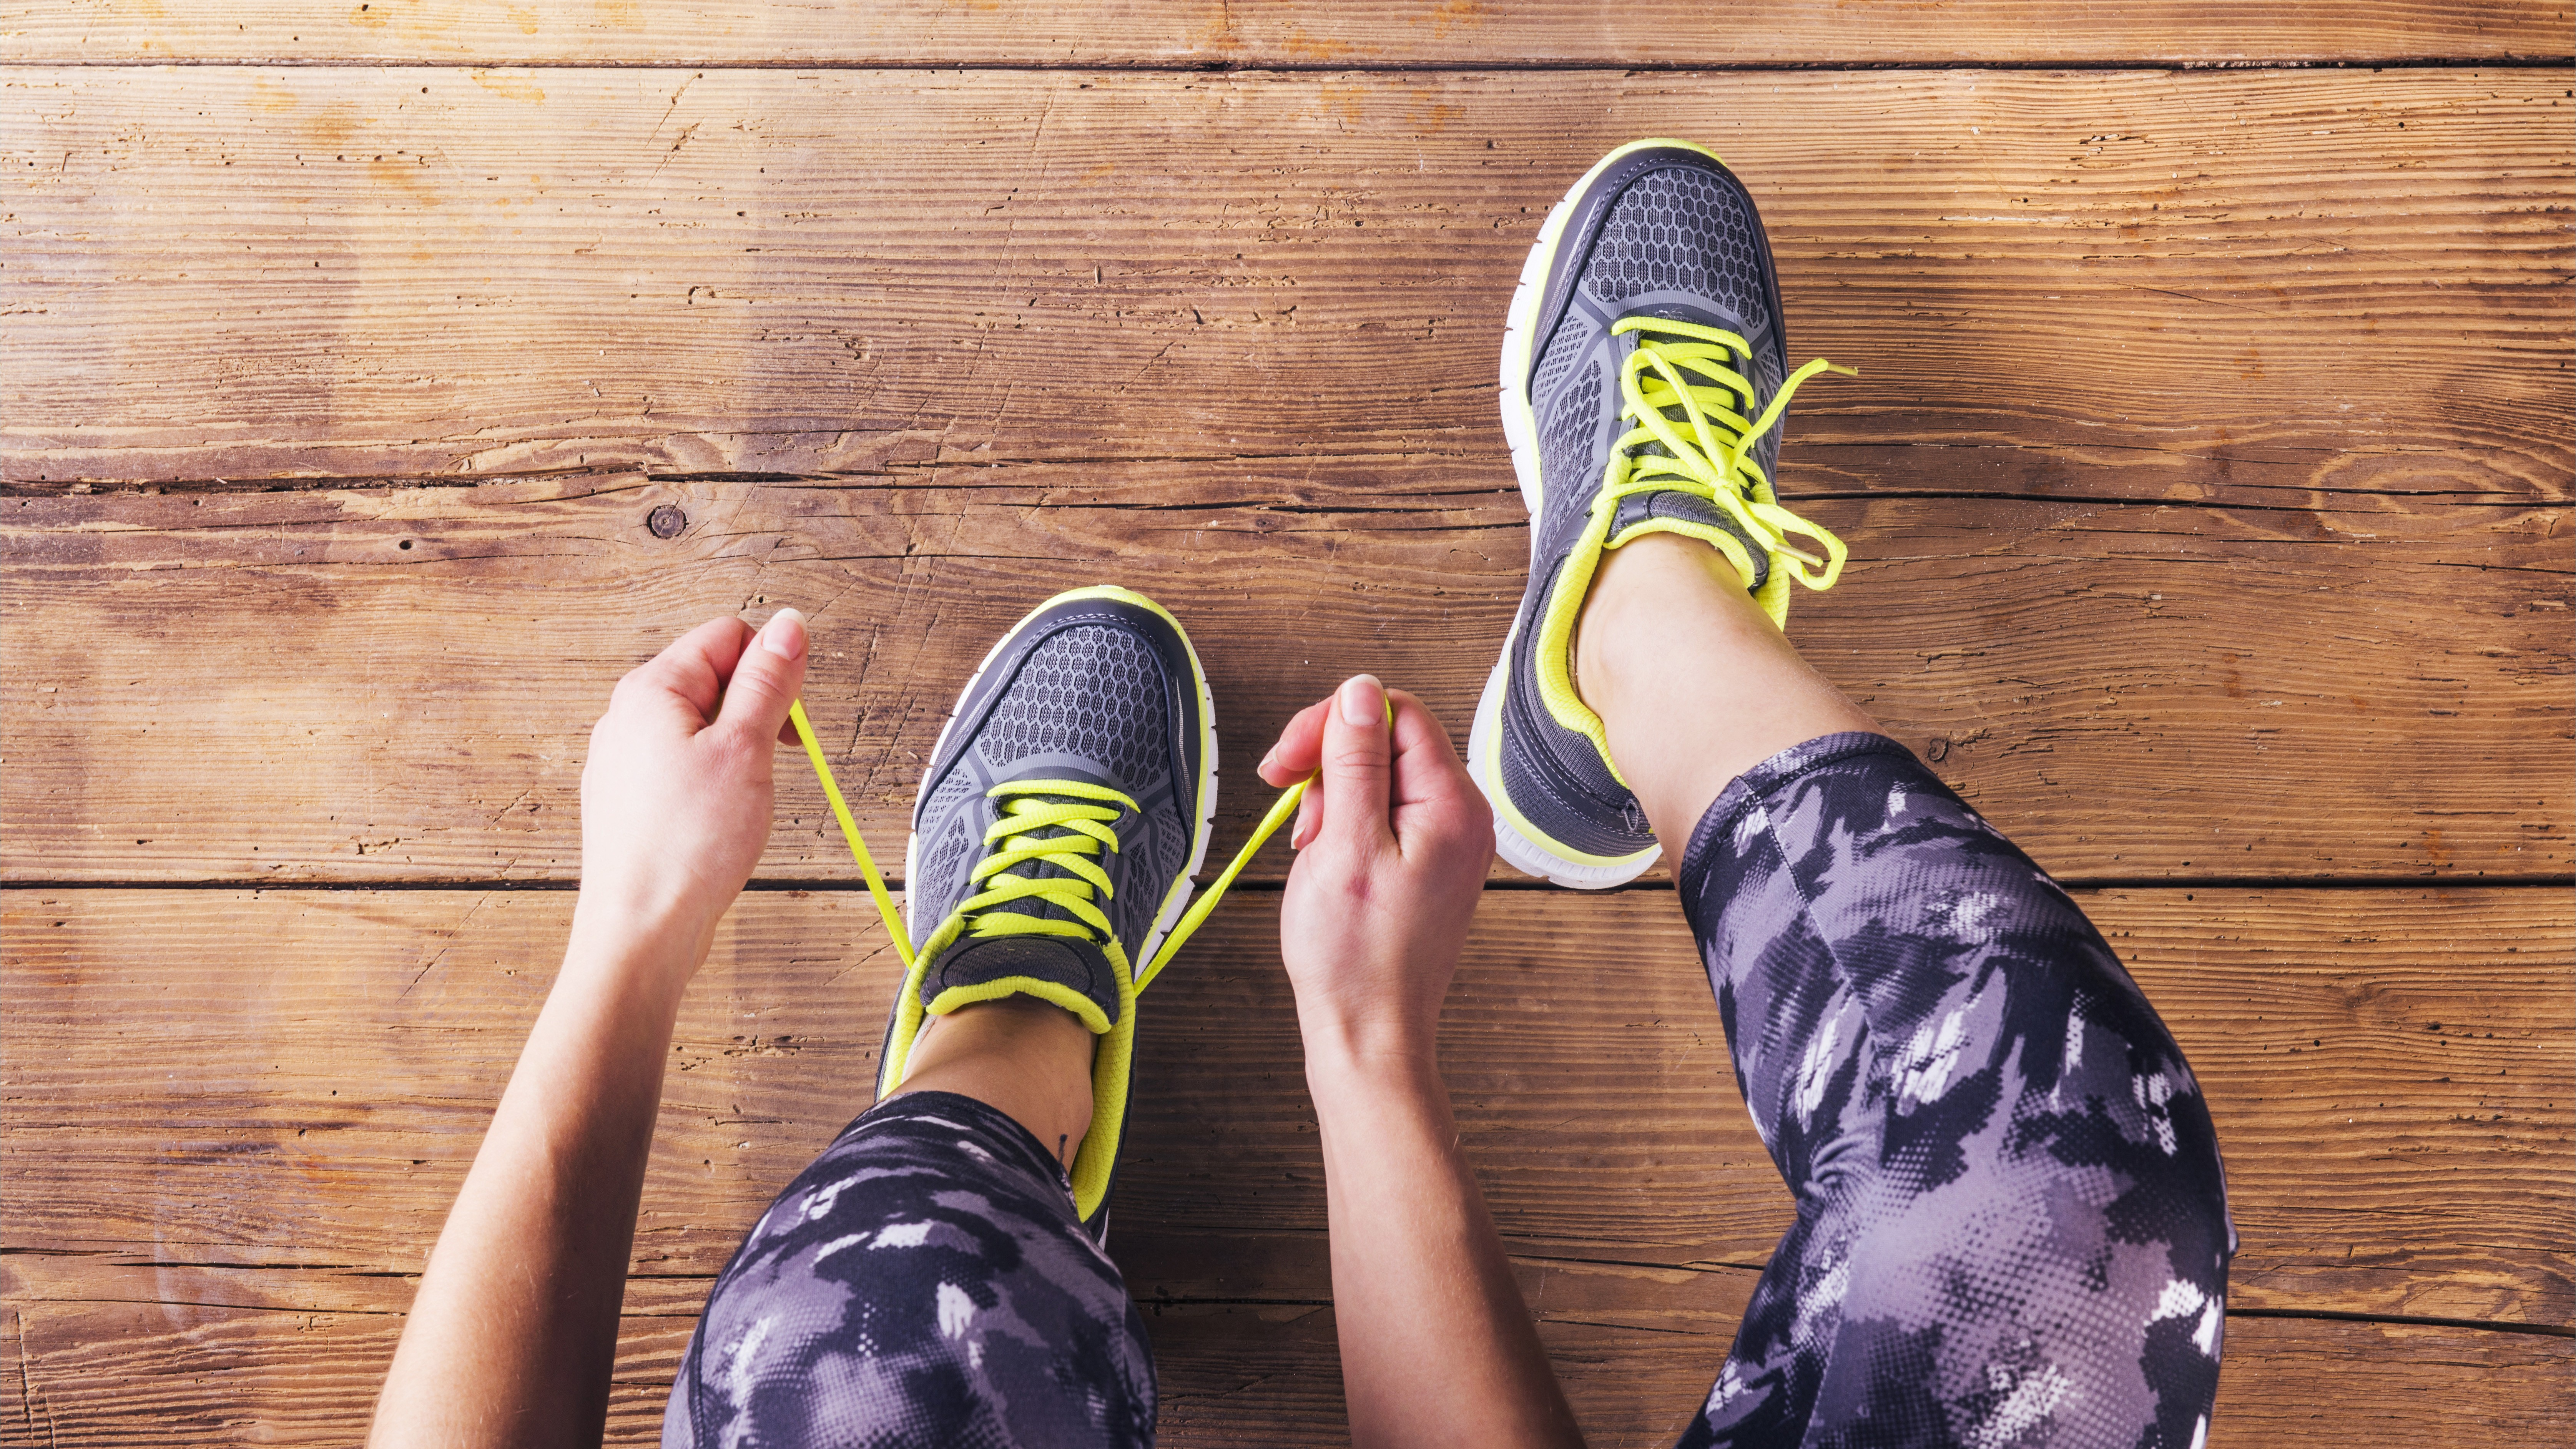 Download Running Shoes Wallpaper Gallery